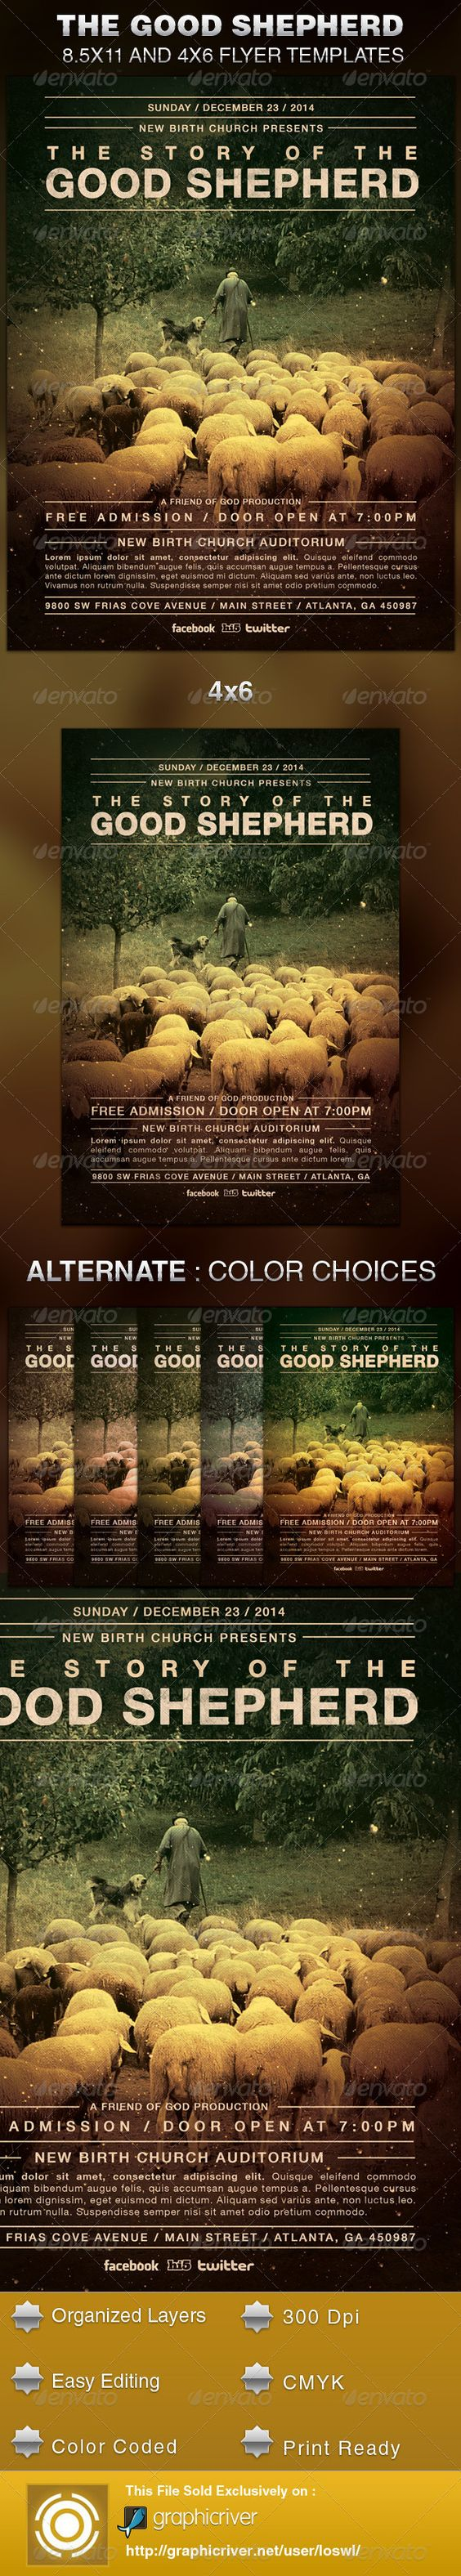 the good shepherd  flyer template and church events on pinterest